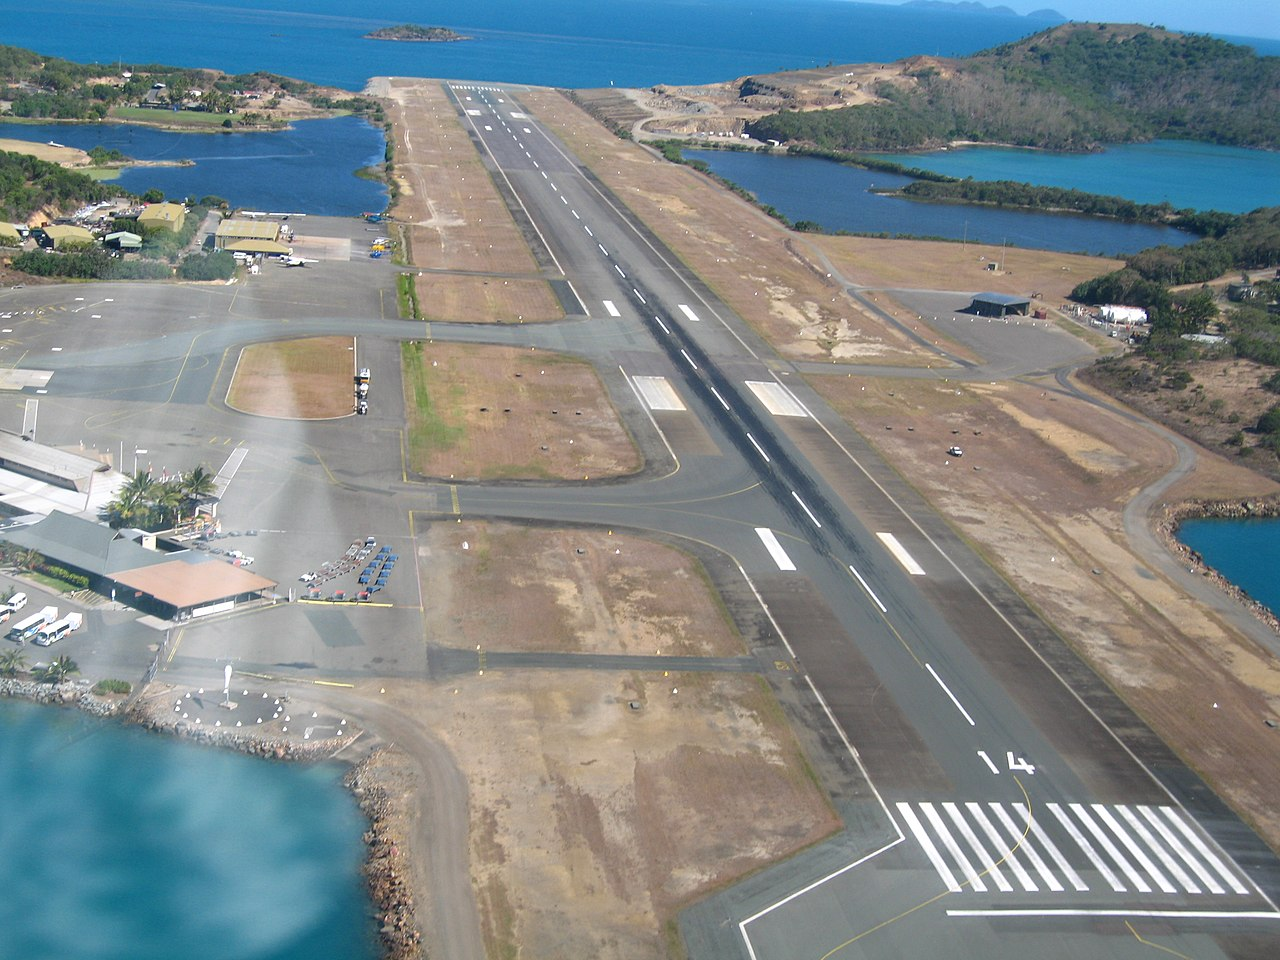 How Long Is Lizaed Island Airport